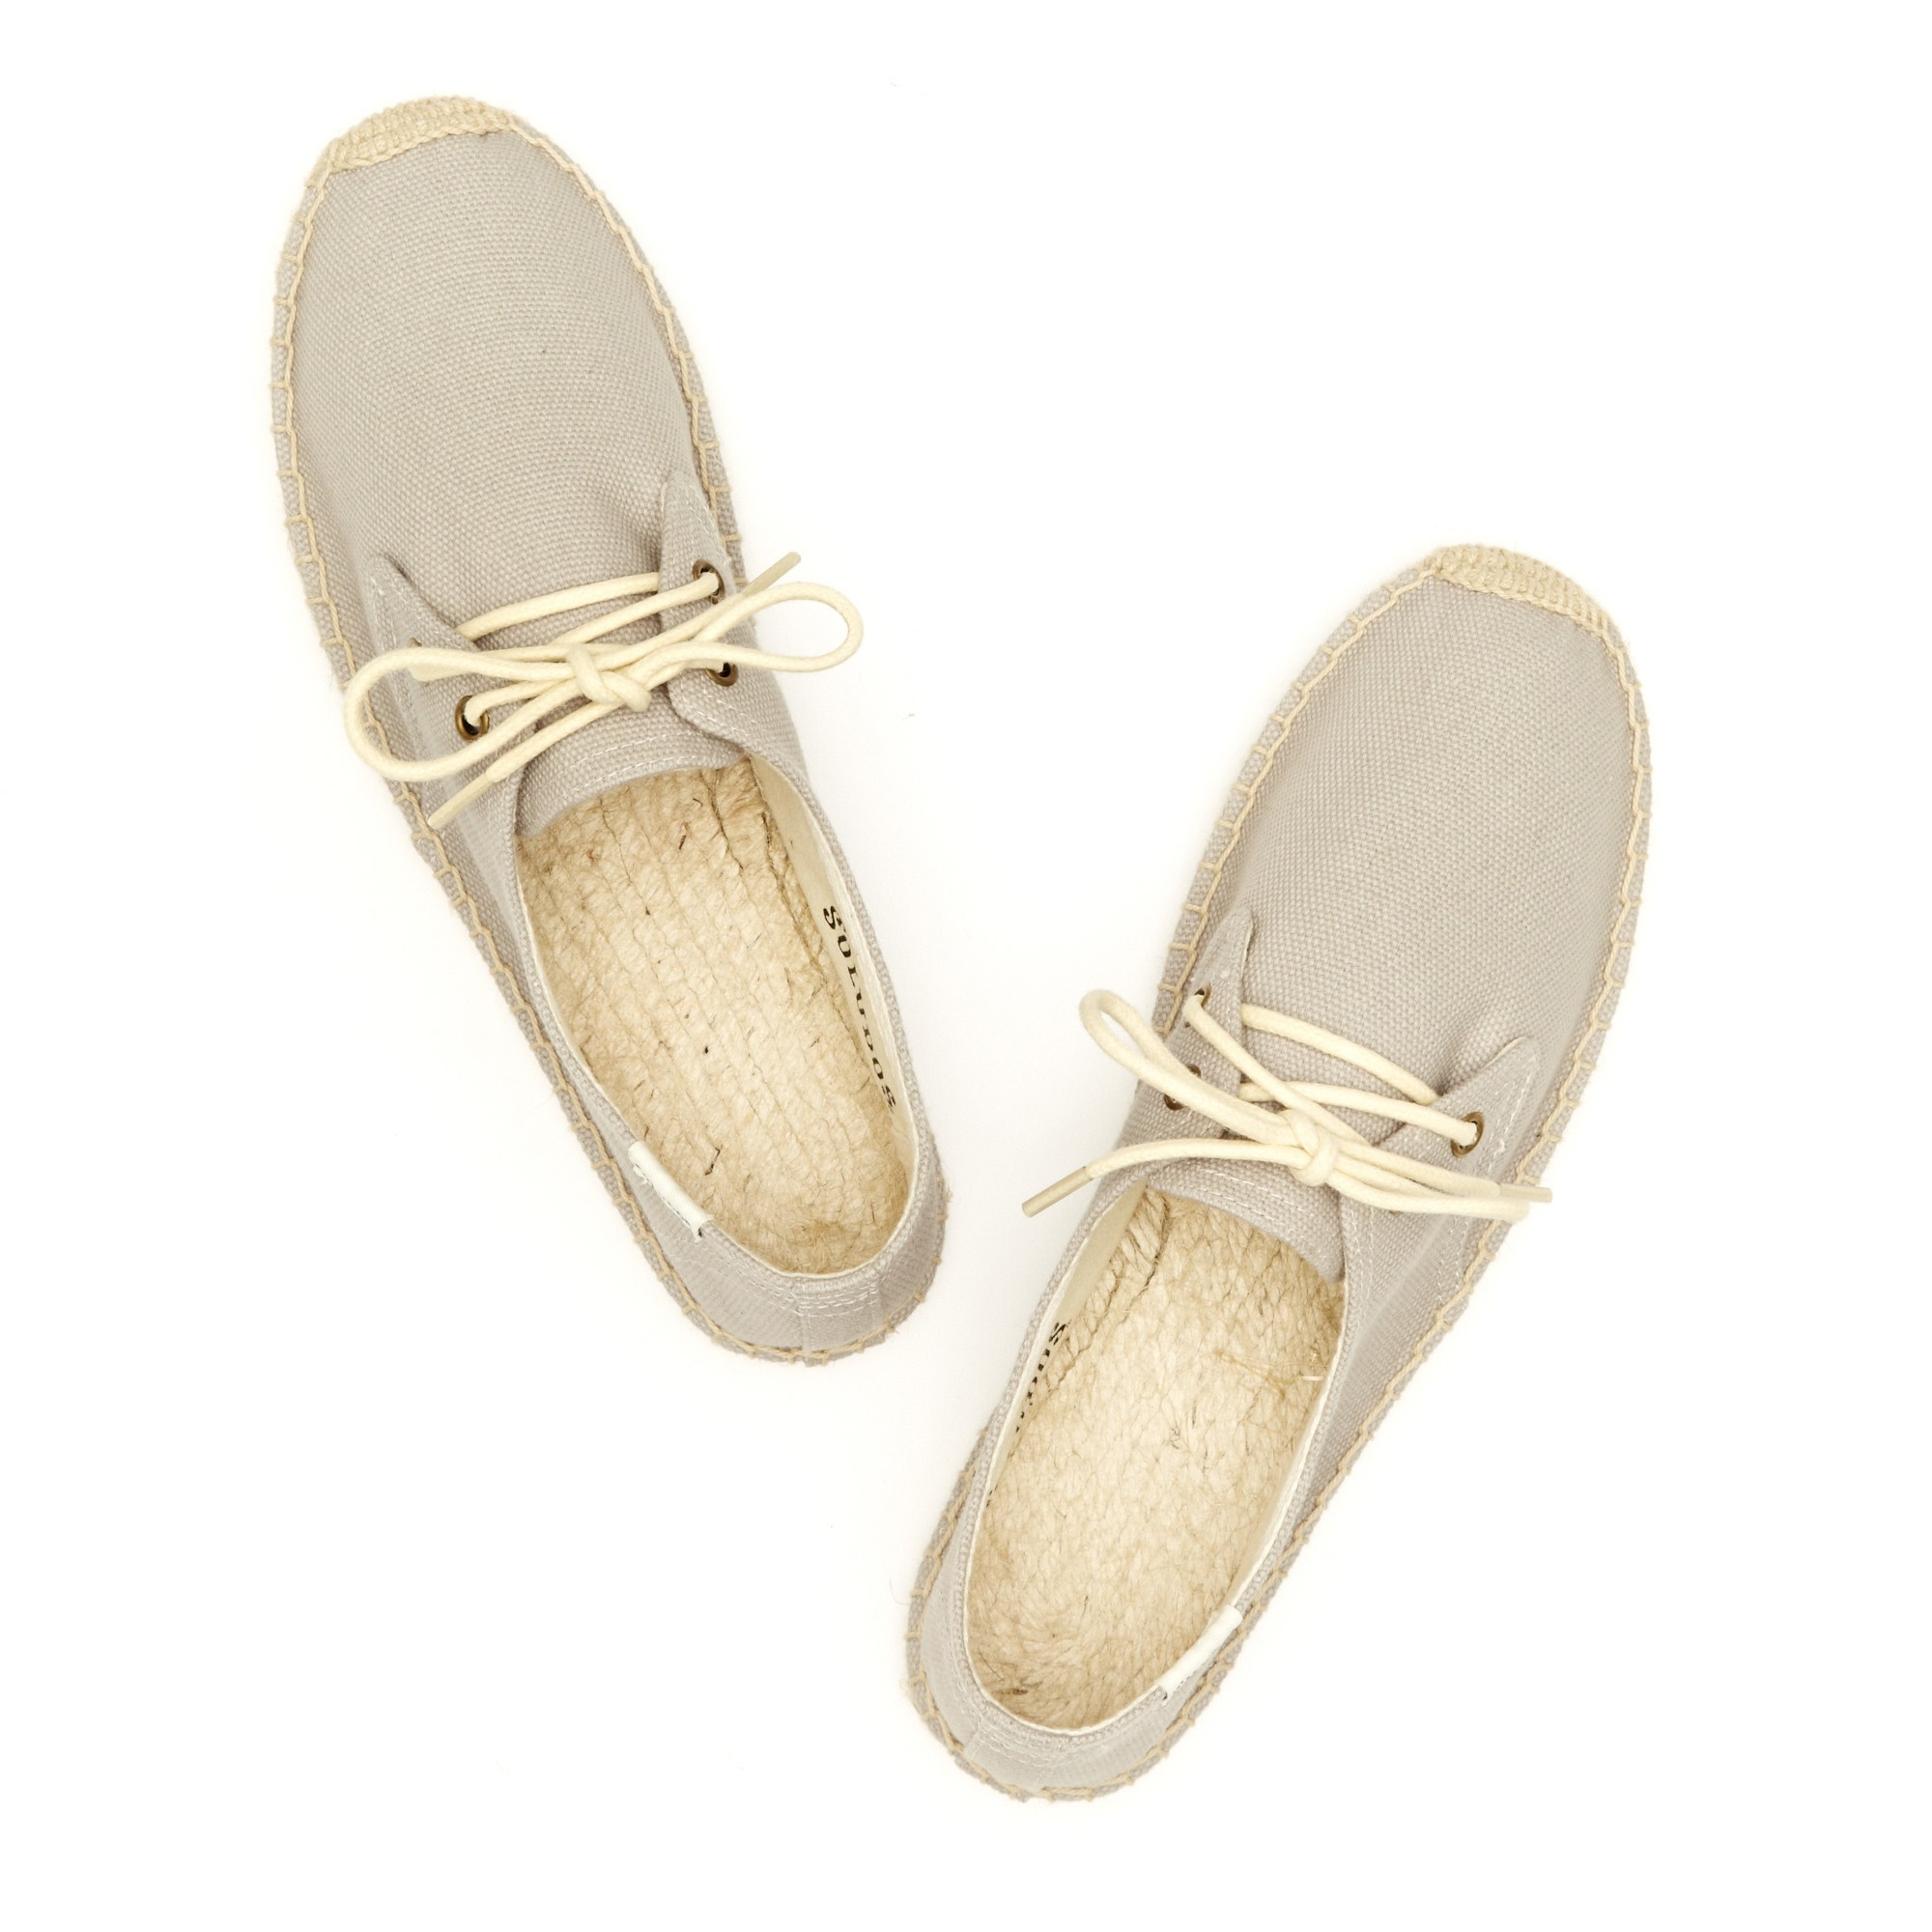 Canvas Derby - Espadrilles for Women from Soludos - Soludos Espadrilles